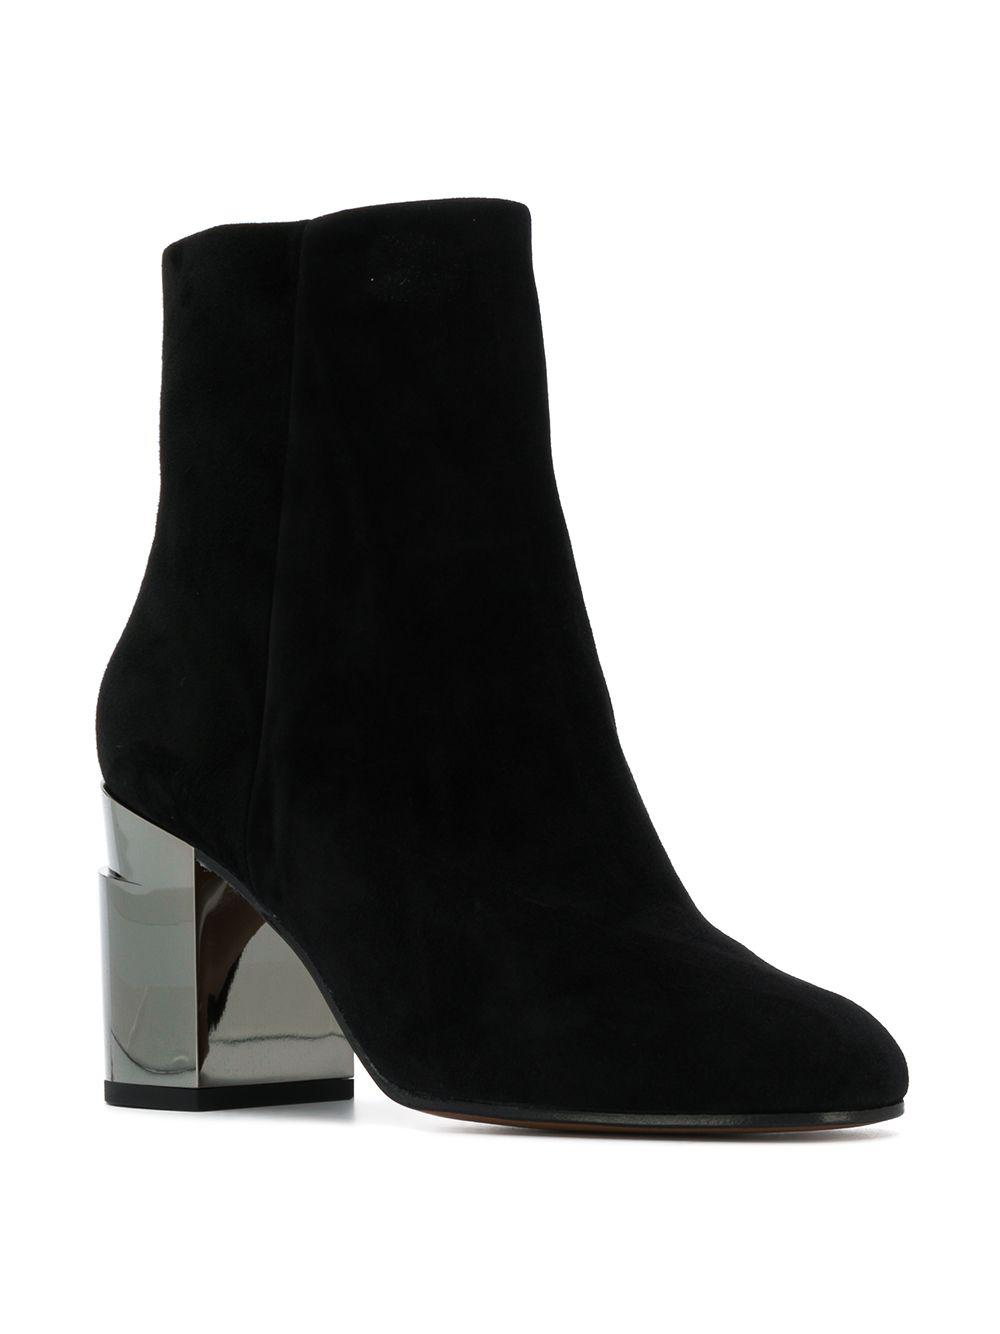 Clergerie Suede Keyla Ankle Boots in Black